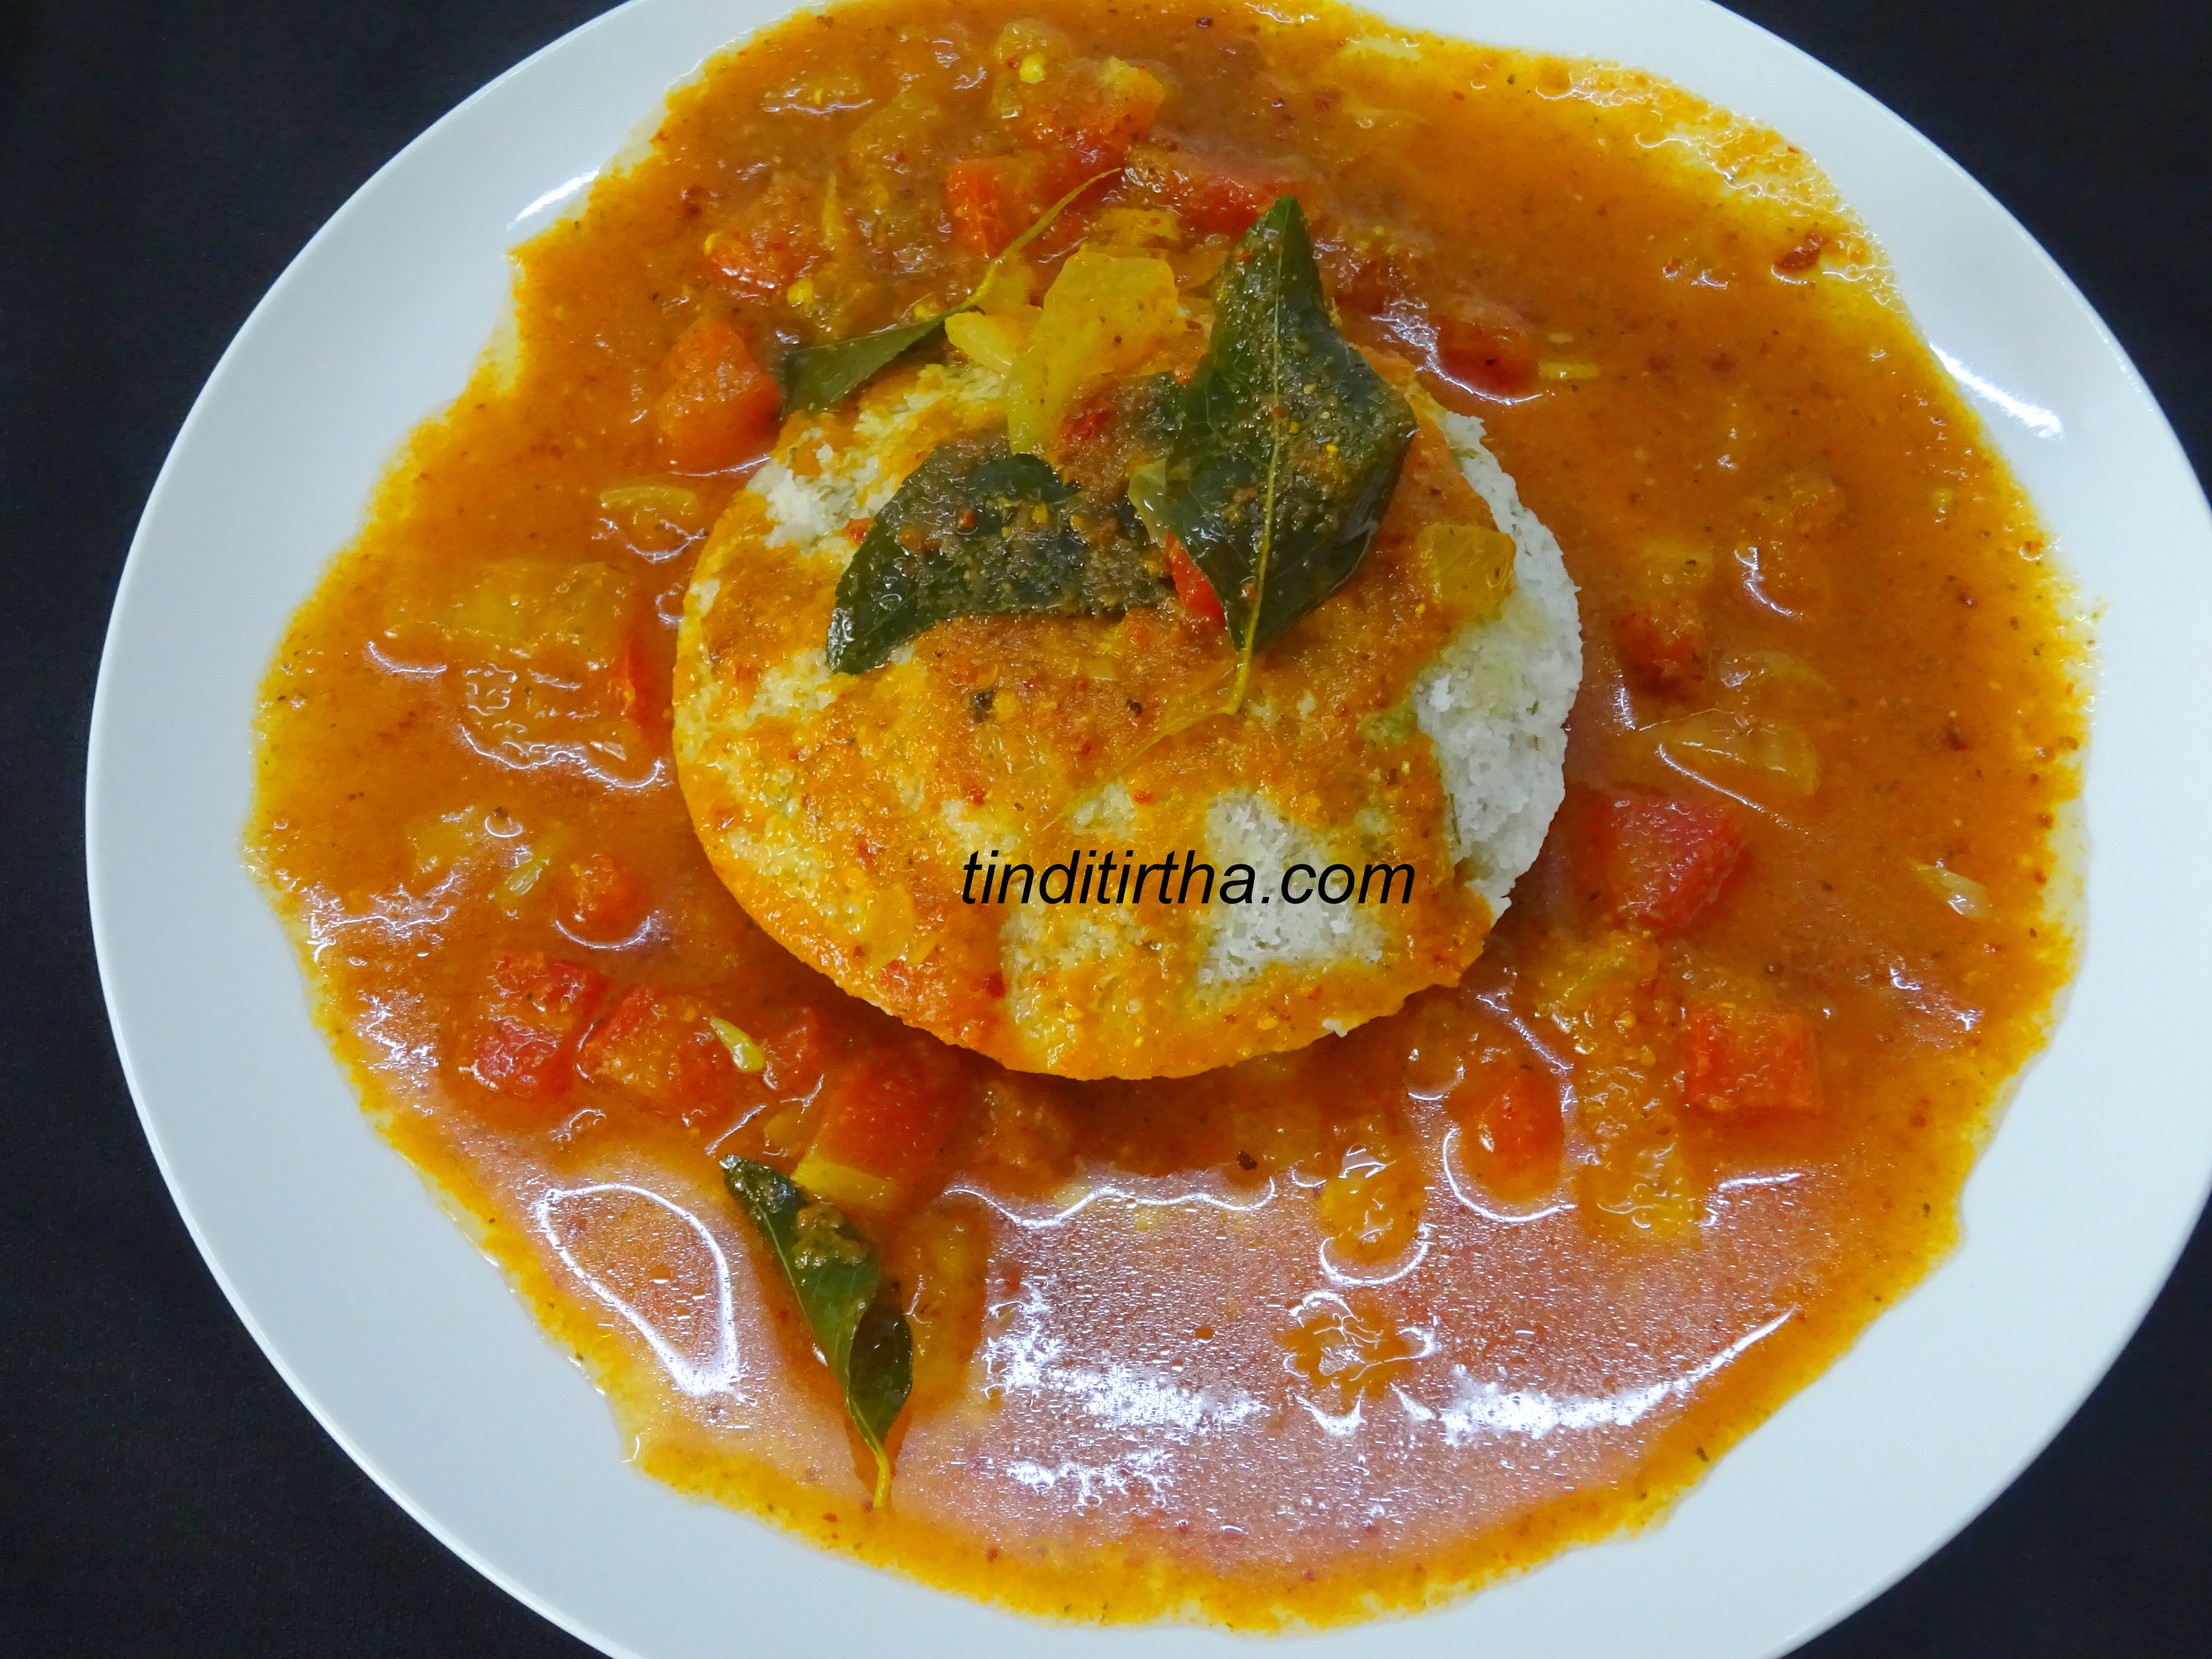 IDLY-SAMBAR / LENTIL LESS SAMBAR FOR IDLY